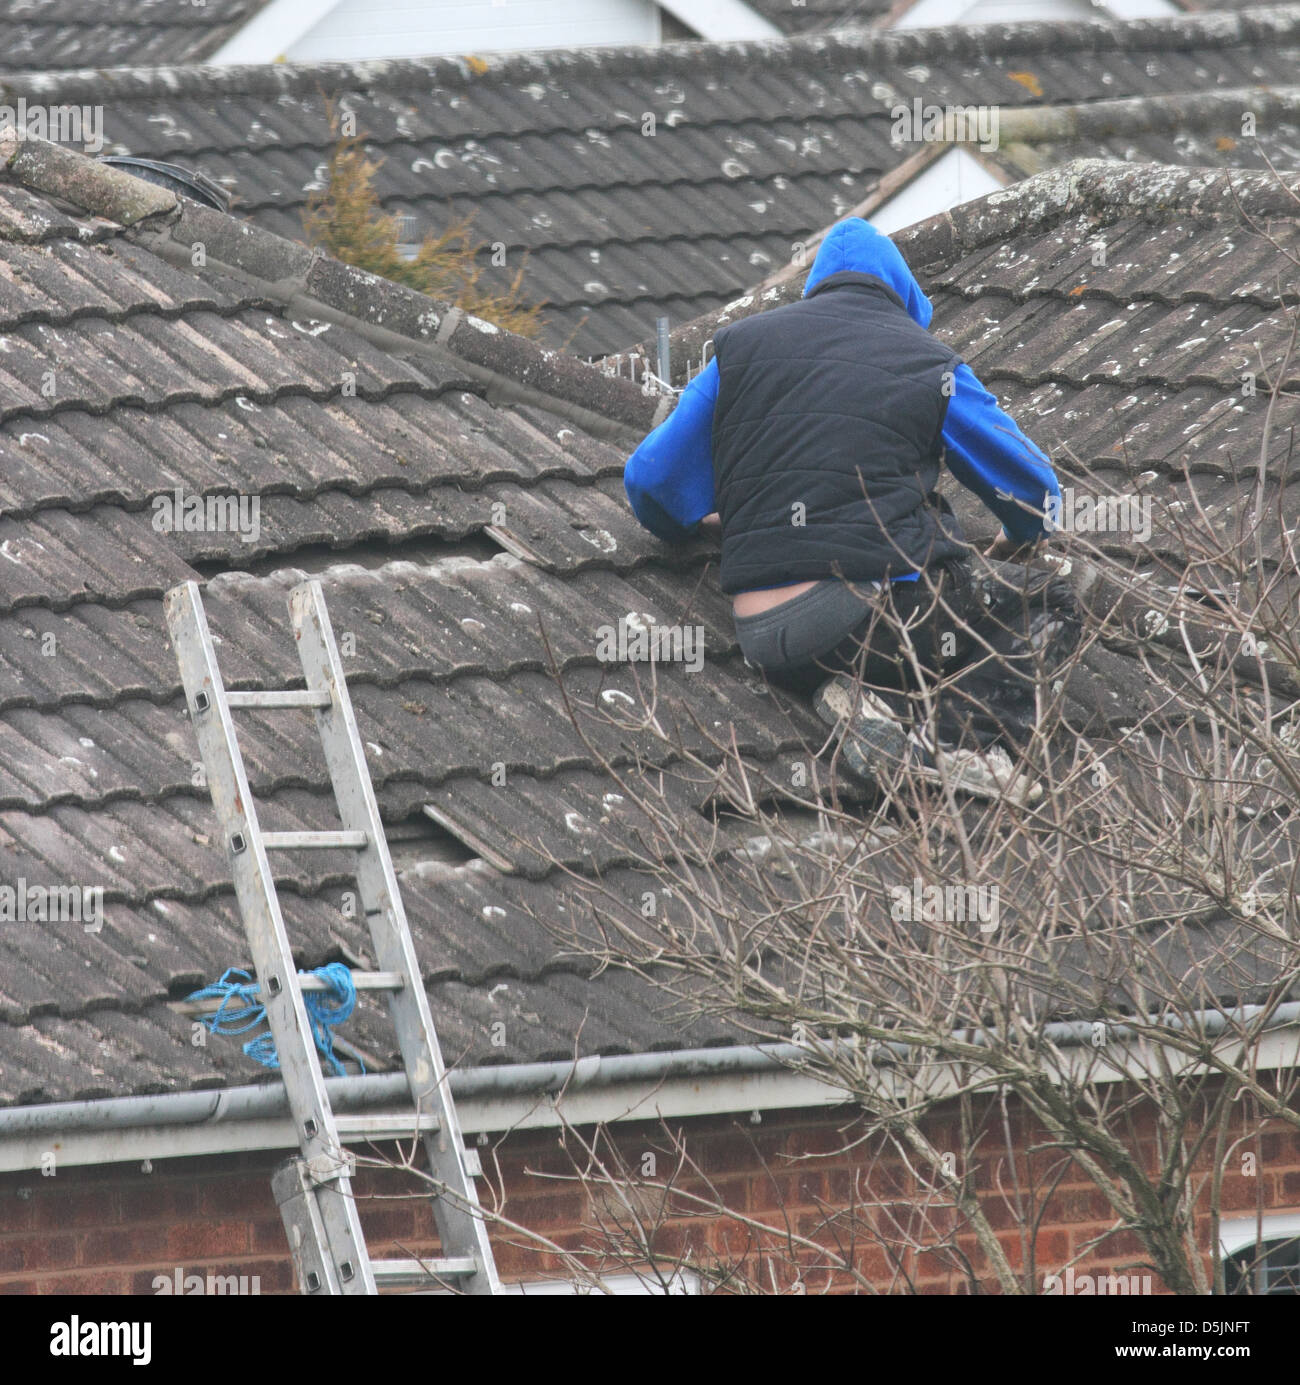 Roofers Repairing a House Roof, UK - Stock Image